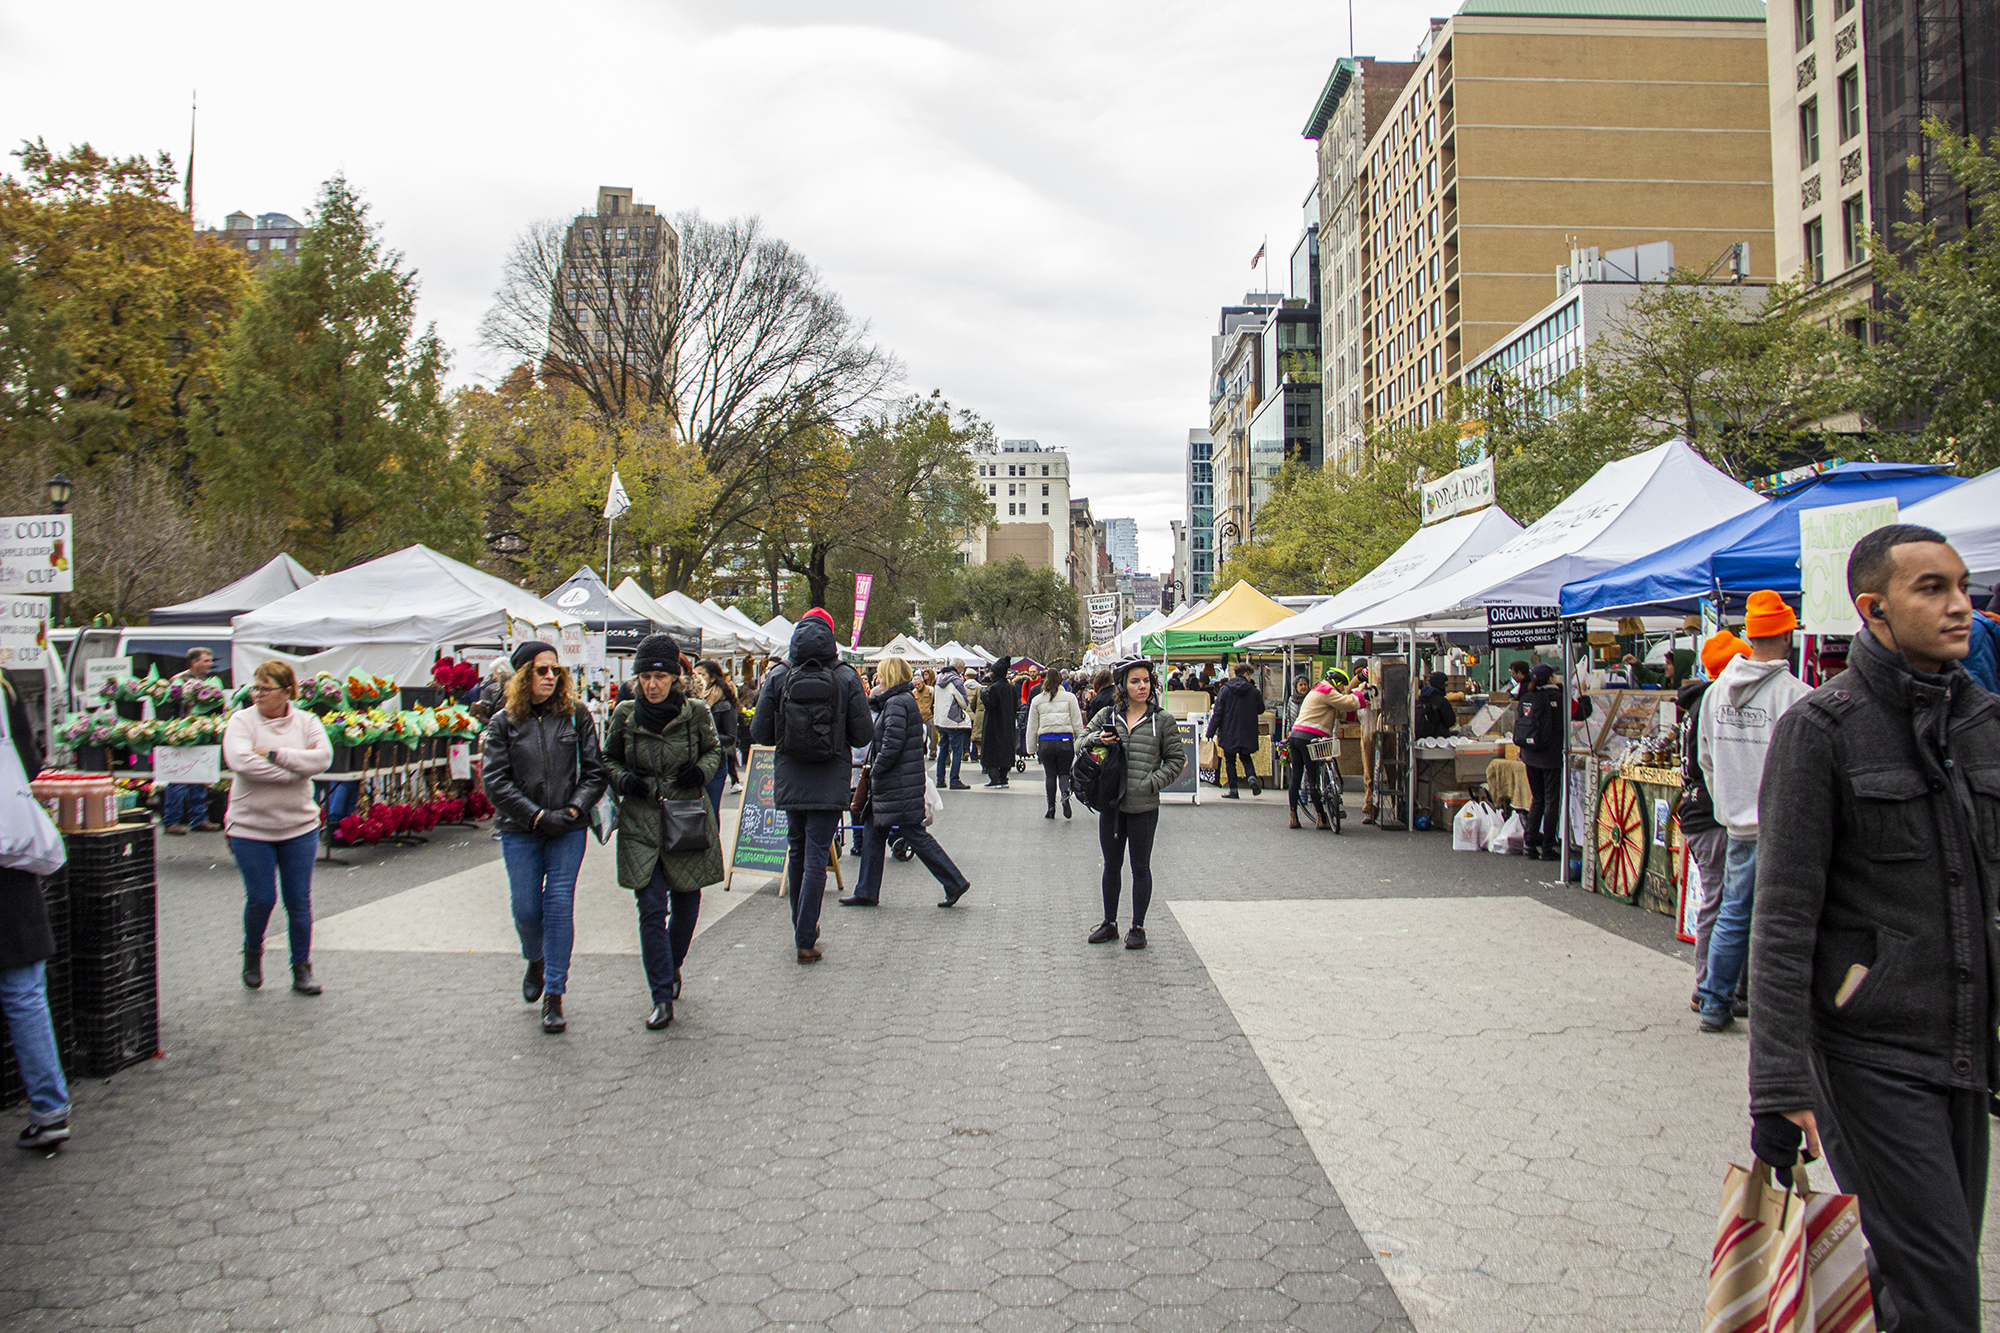 grownyc union square greenmarket